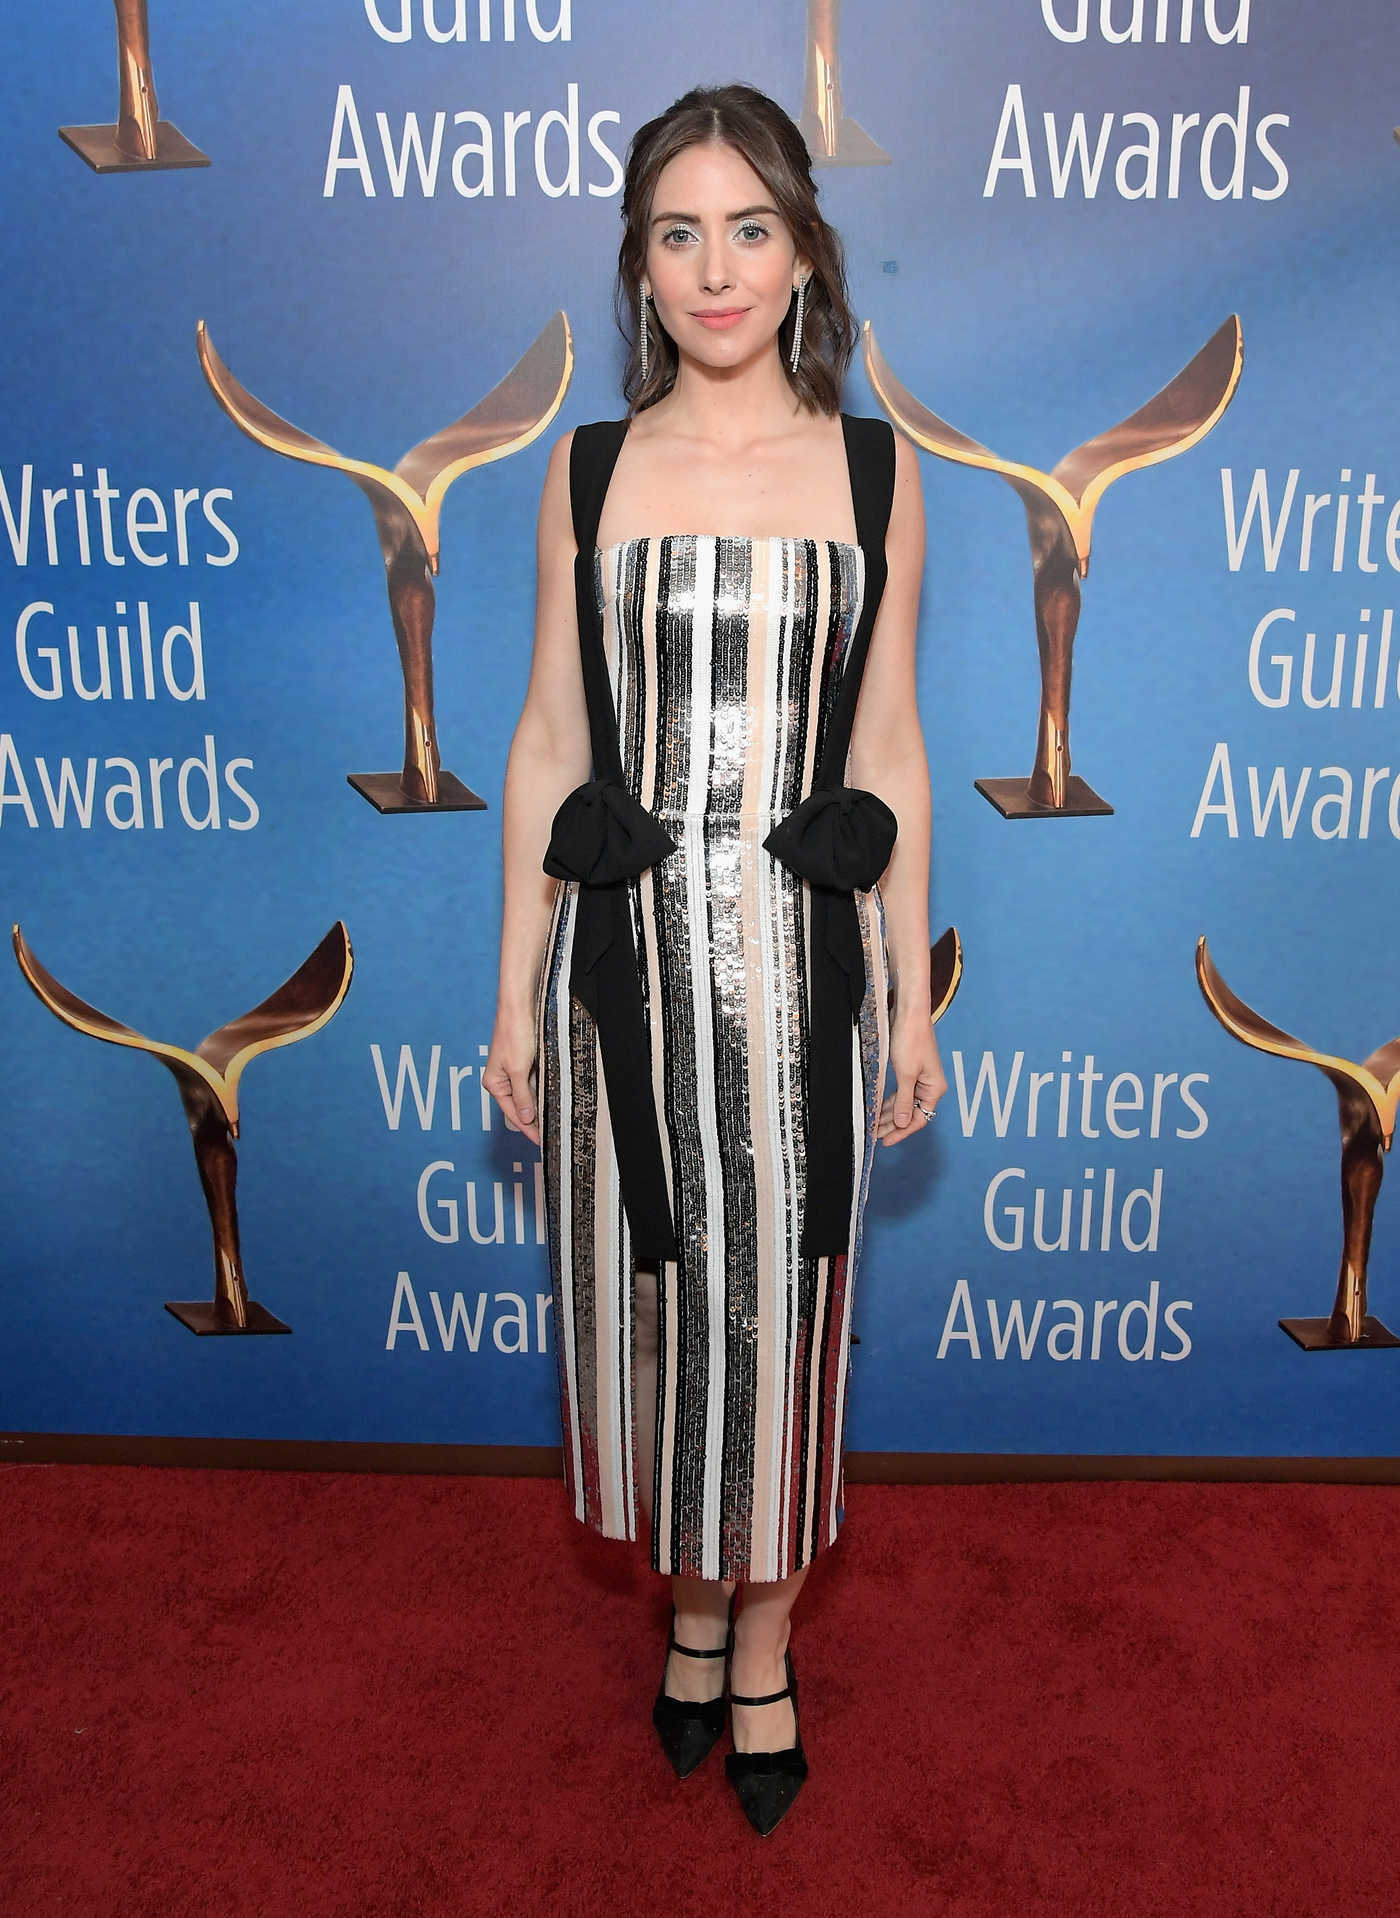 Alison Brie Attends the 71st Annual Writers Guild Awards in Los Angeles 02/17/2019